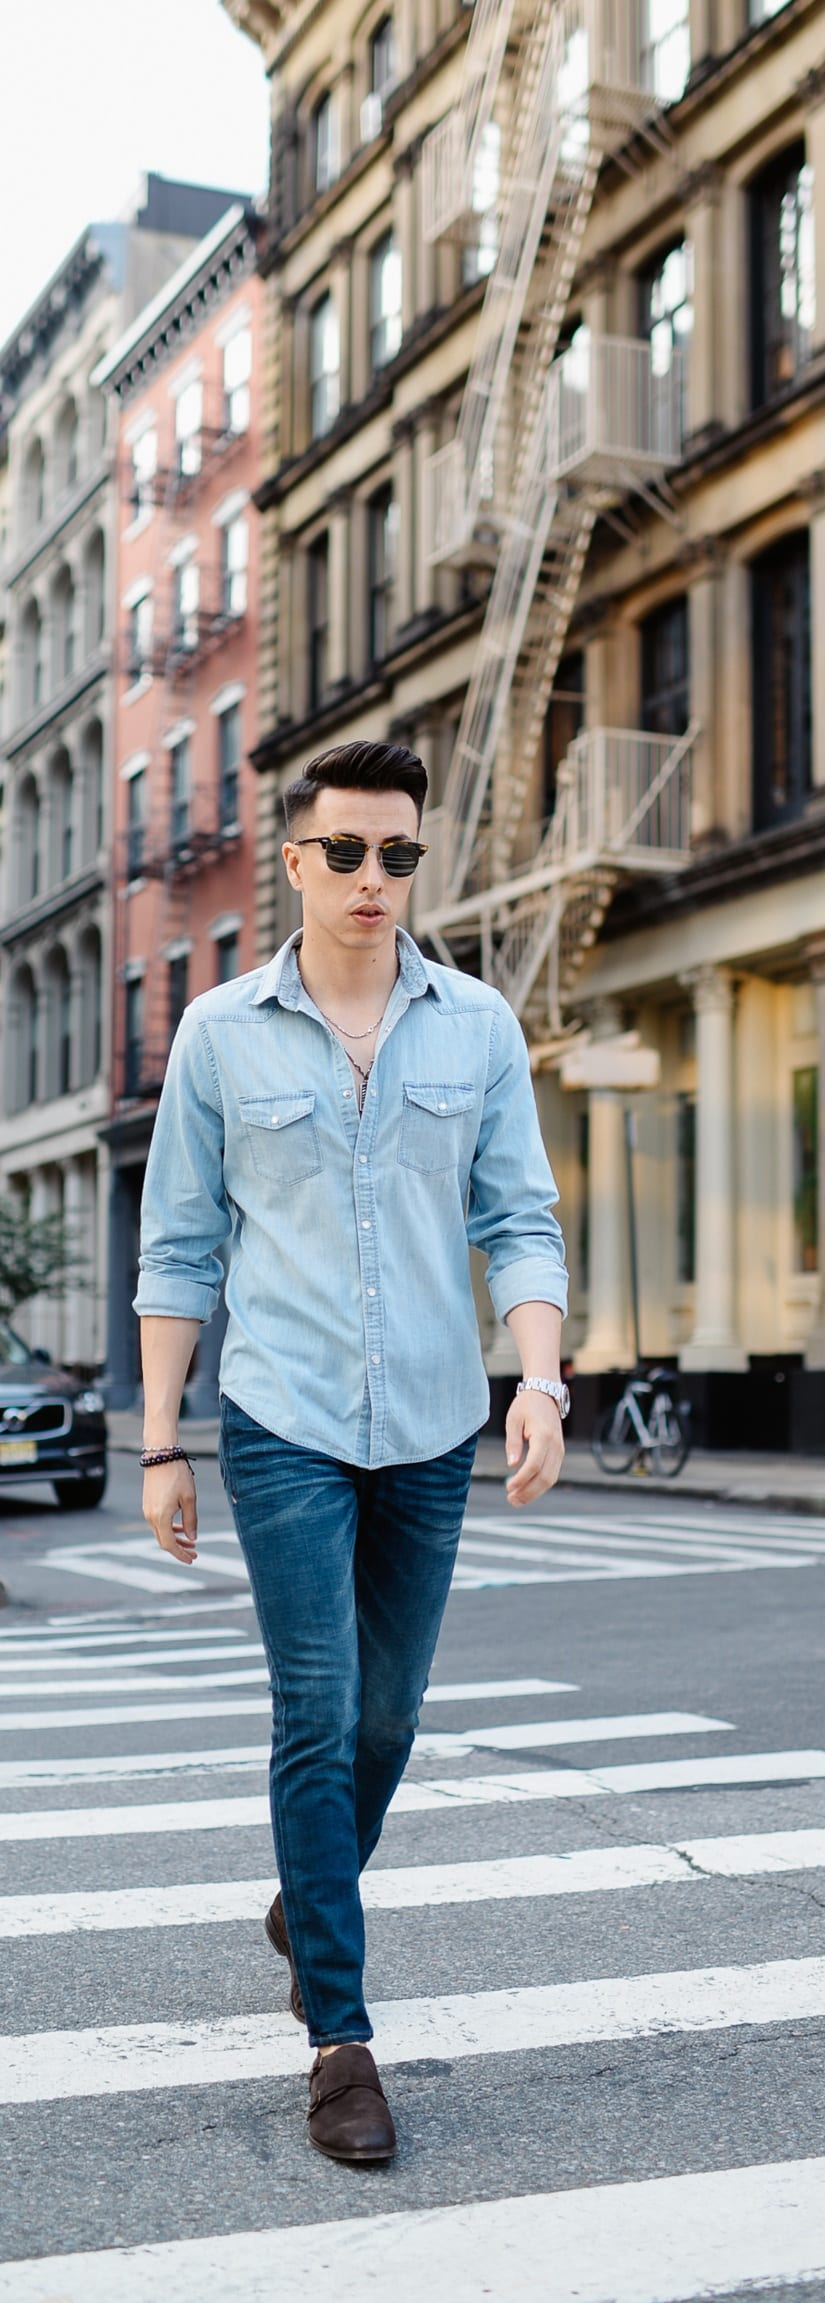 American Casual Outfit Ideas For Guys